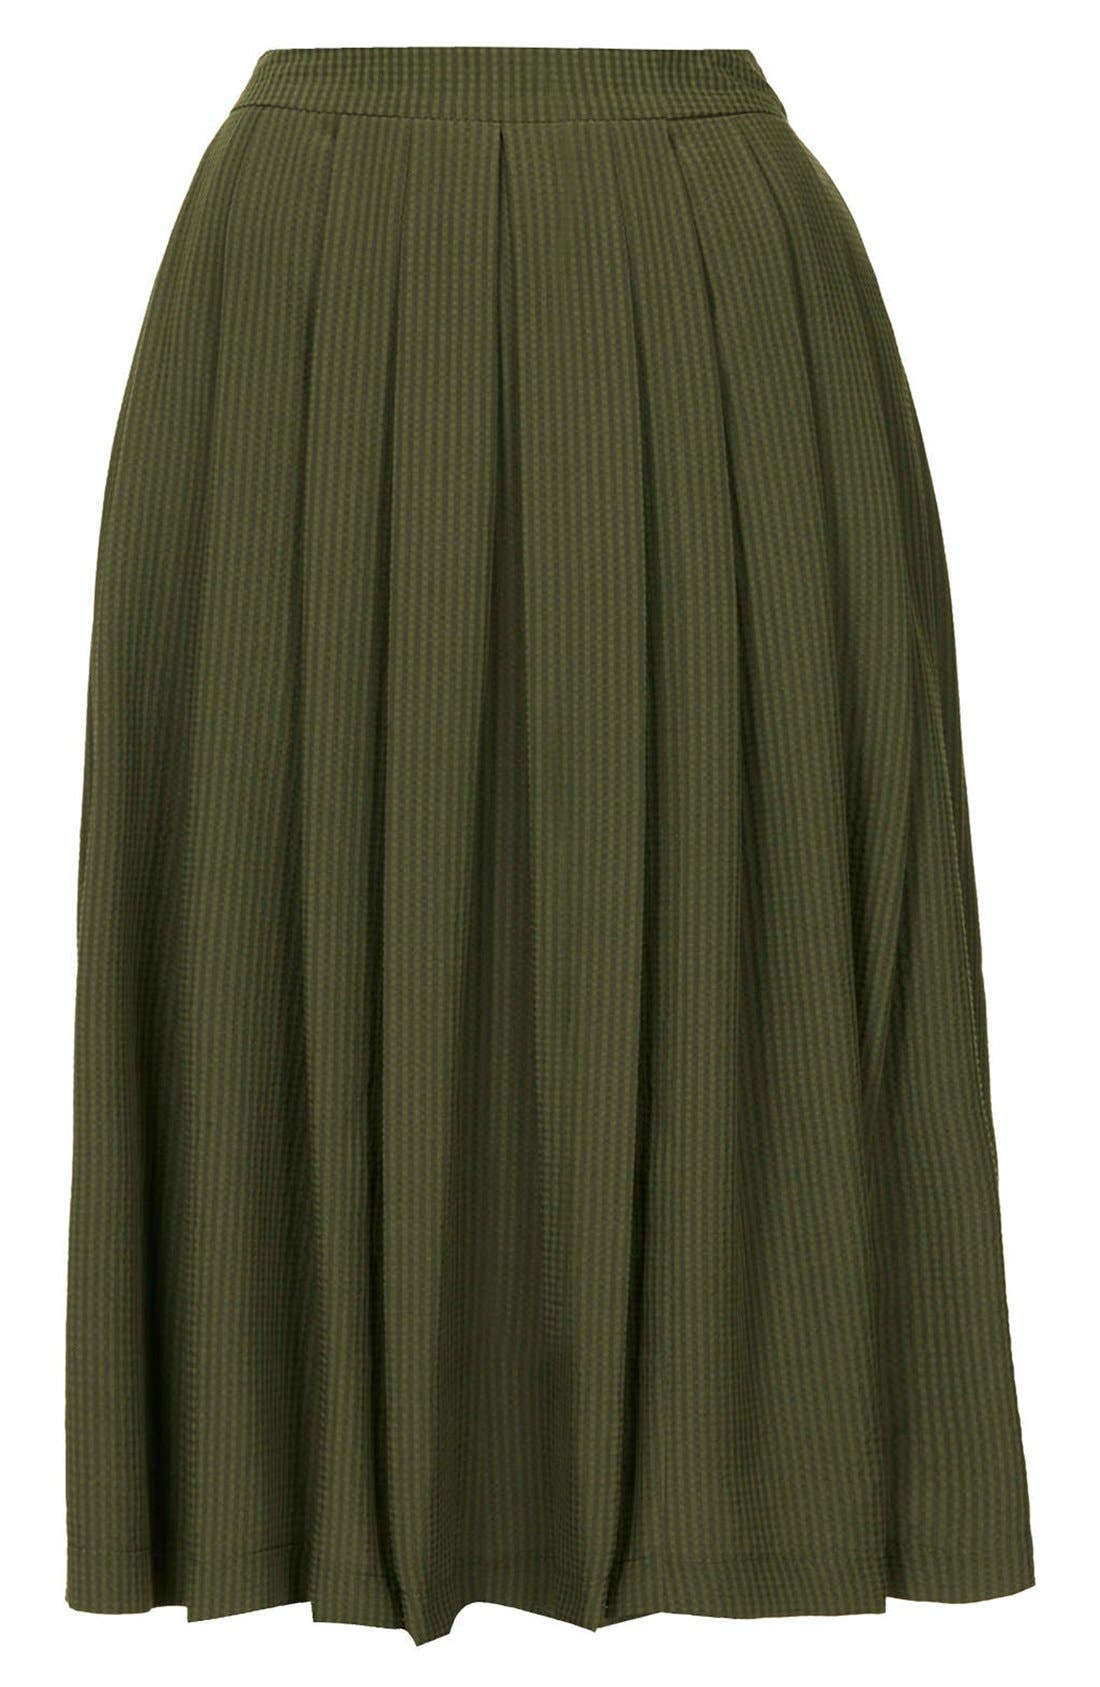 Alternate Image 3  - Topshop Seersucker Midi Skirt